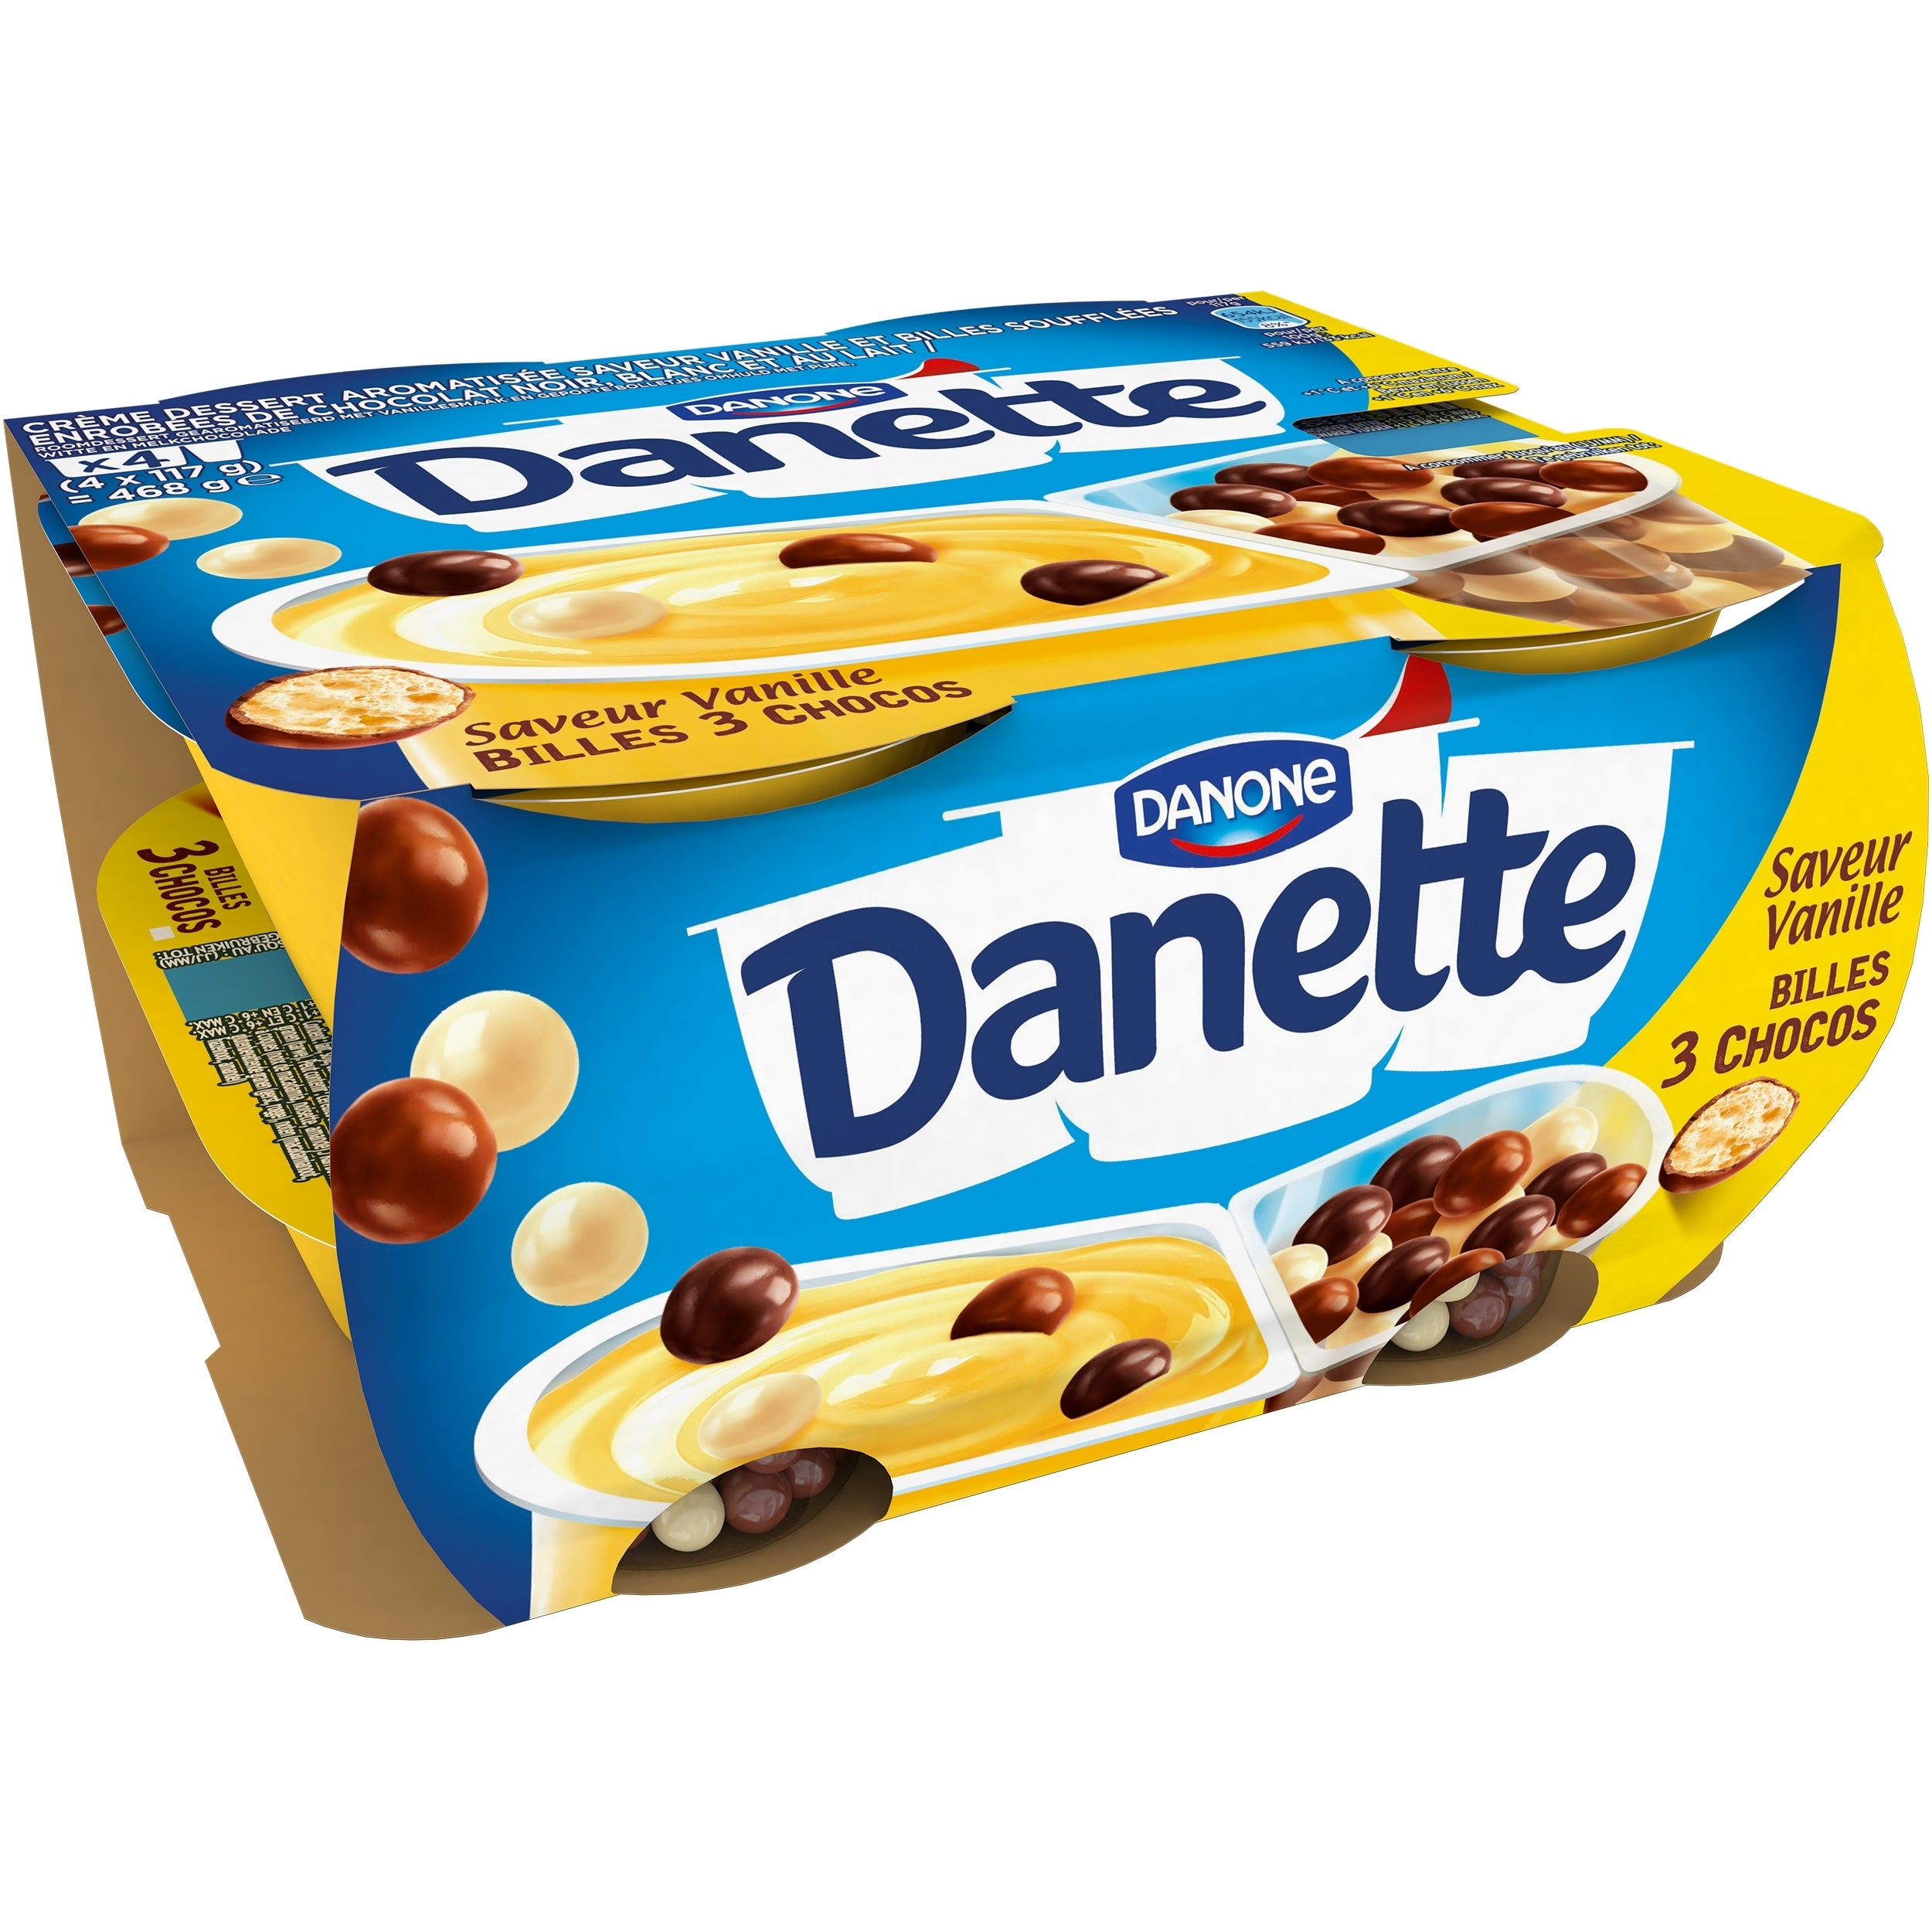 Danette Pop Vanillesmaak